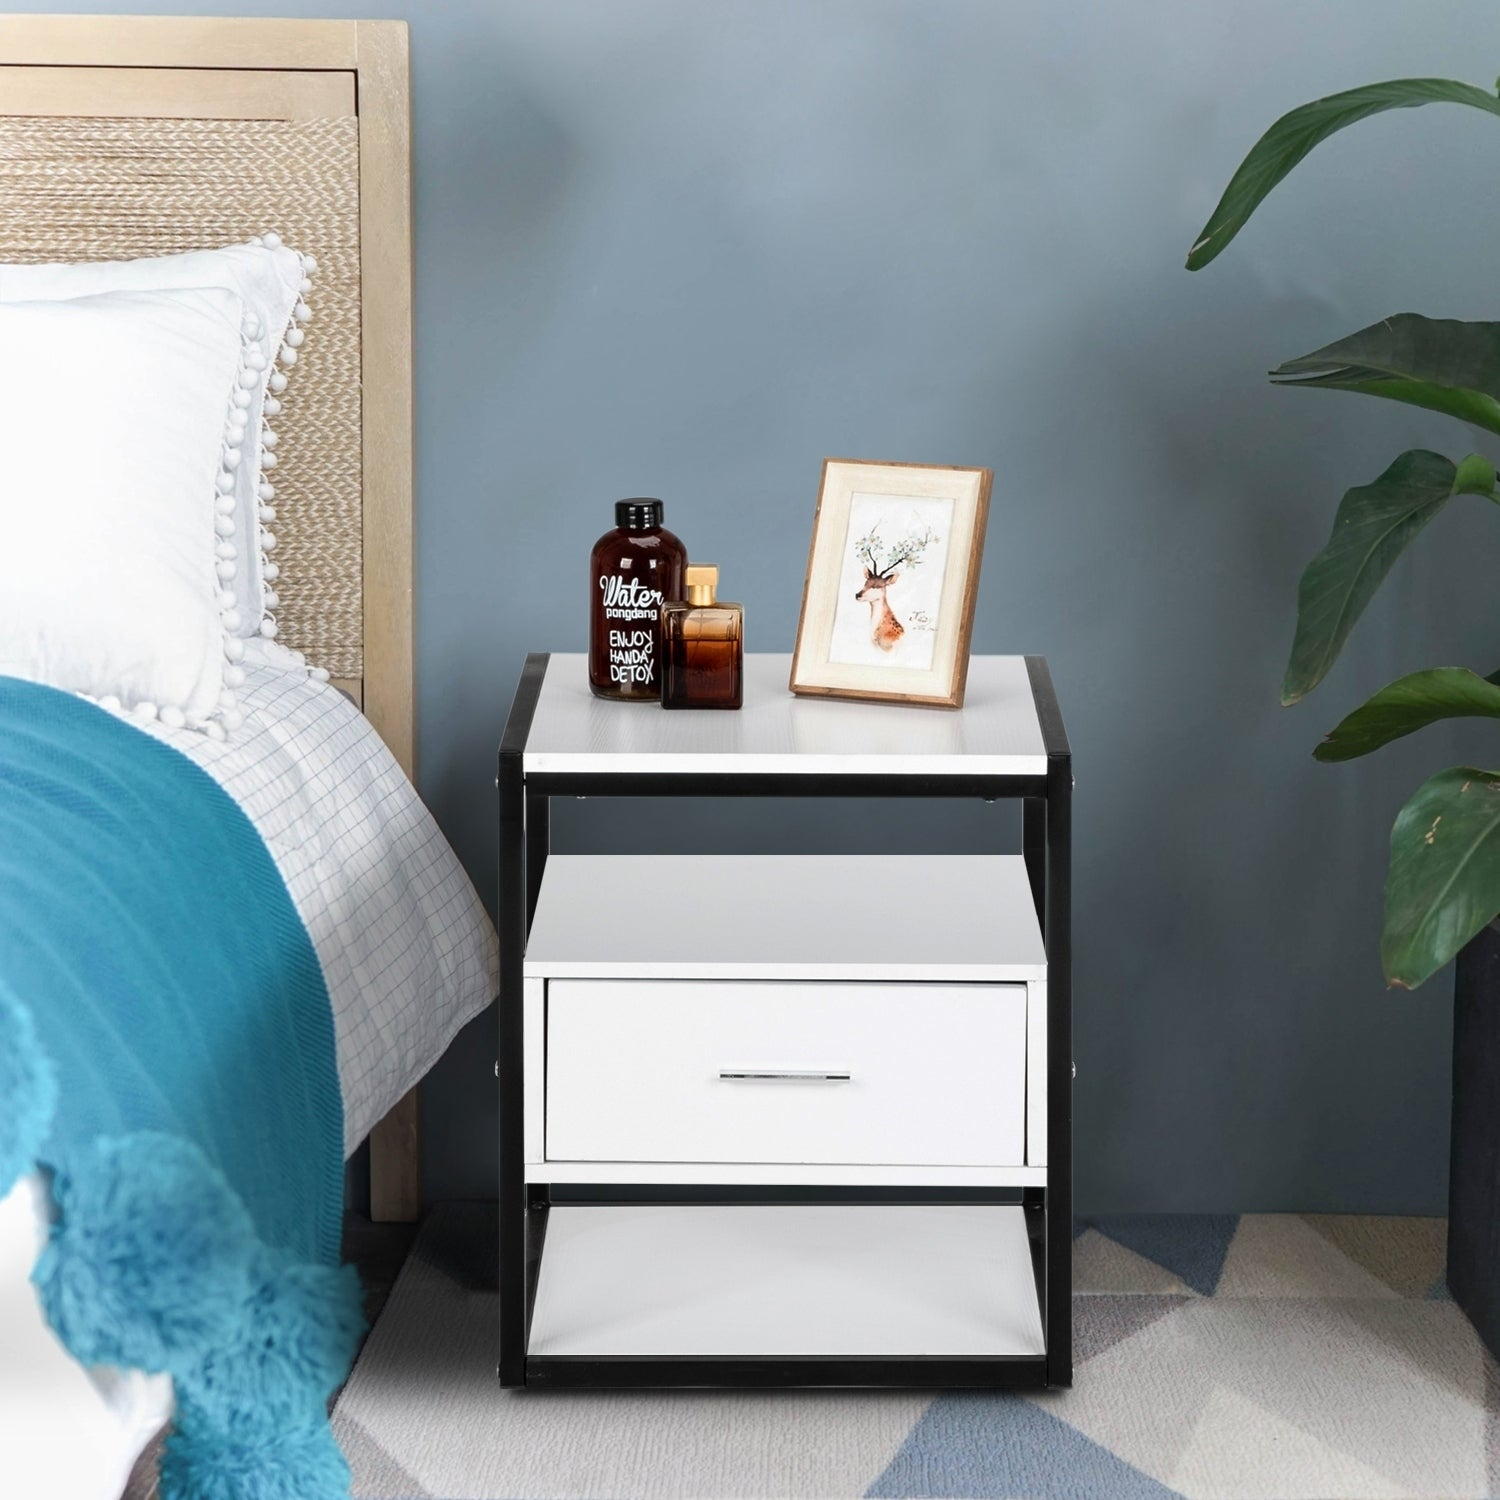 Modern style Style with a Drawer Nightstand bedside table 49.5x39.5x29.5 cm